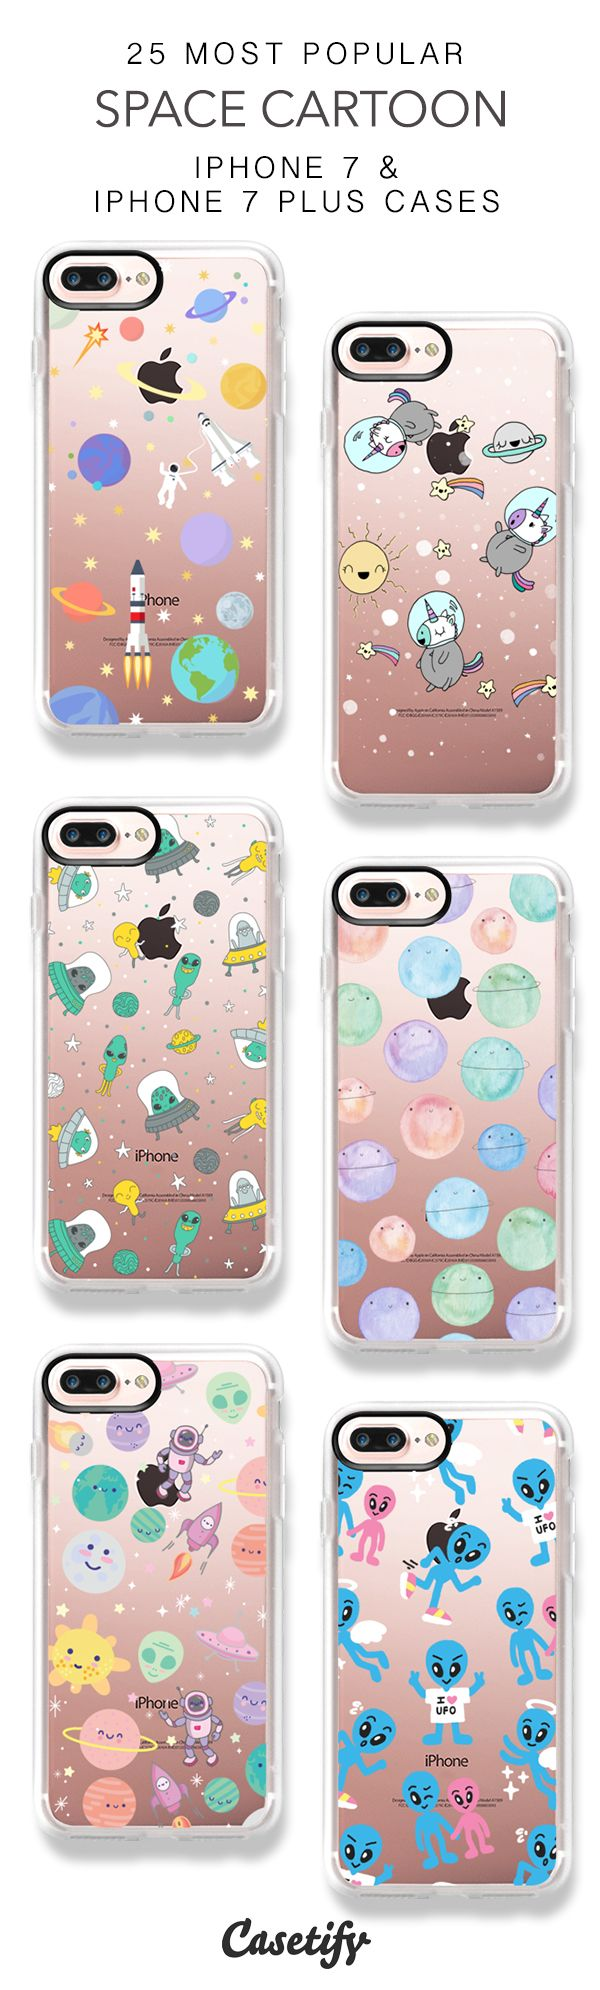 25 Most Popular Space Cartoon iPhone 7 Cases and iPhone 7 Plus Cases. More Cute iPhone case here > https://www.casetify.com/collections/top_100_designs#/?vc=algSgo072f